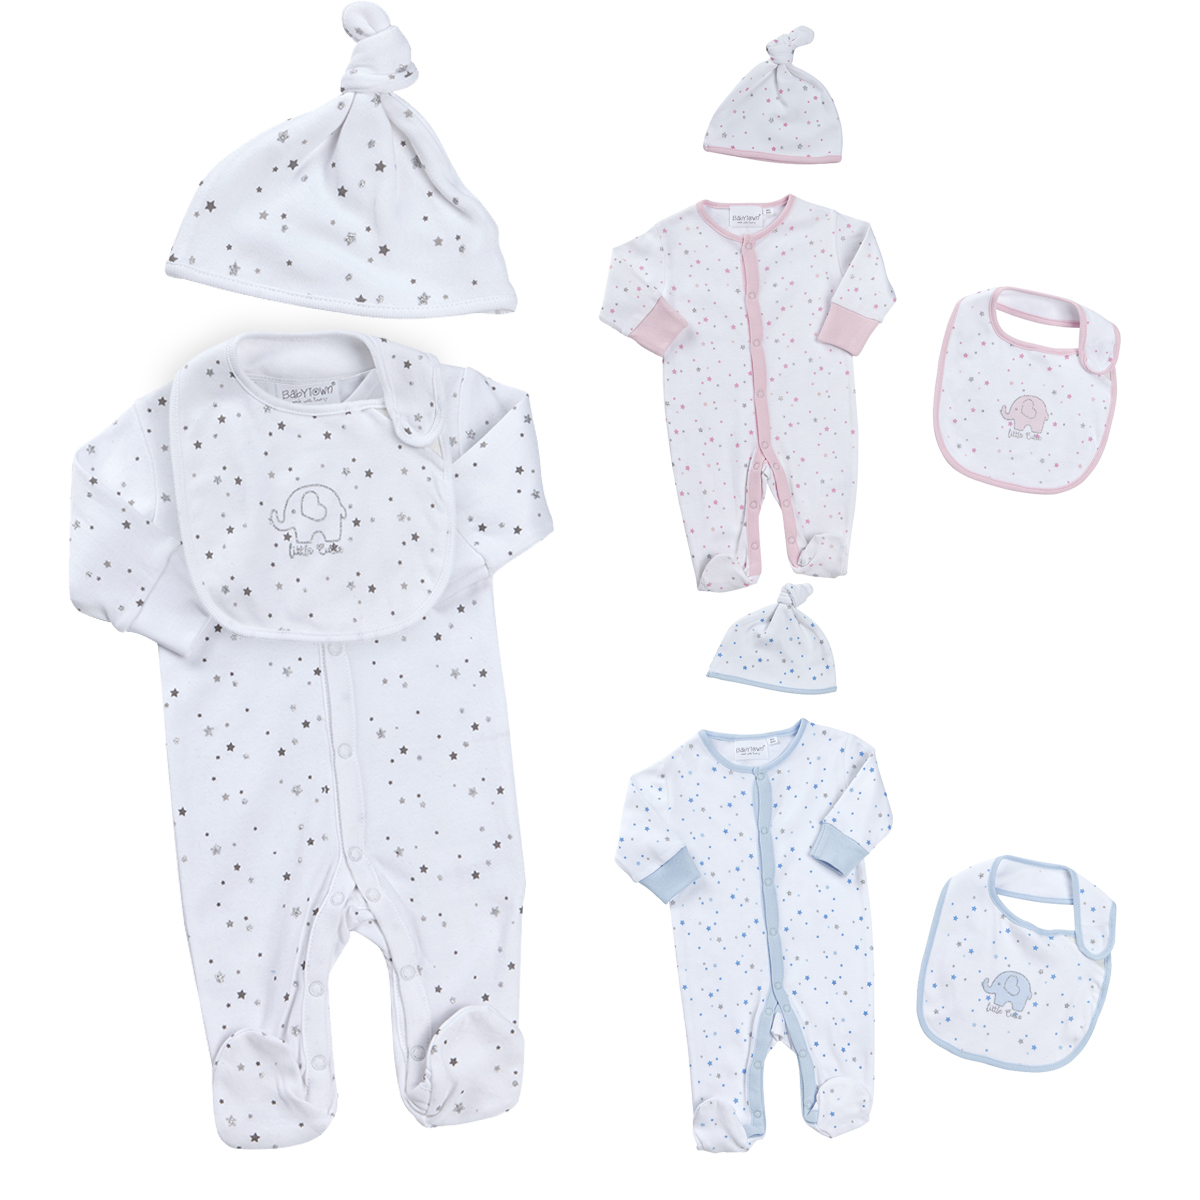 ee0449db0d5a2 Newborn Unisex Baby Boy Girls 3 Piece All In One Sleepsuit Hat Bib Outfit  0-12m